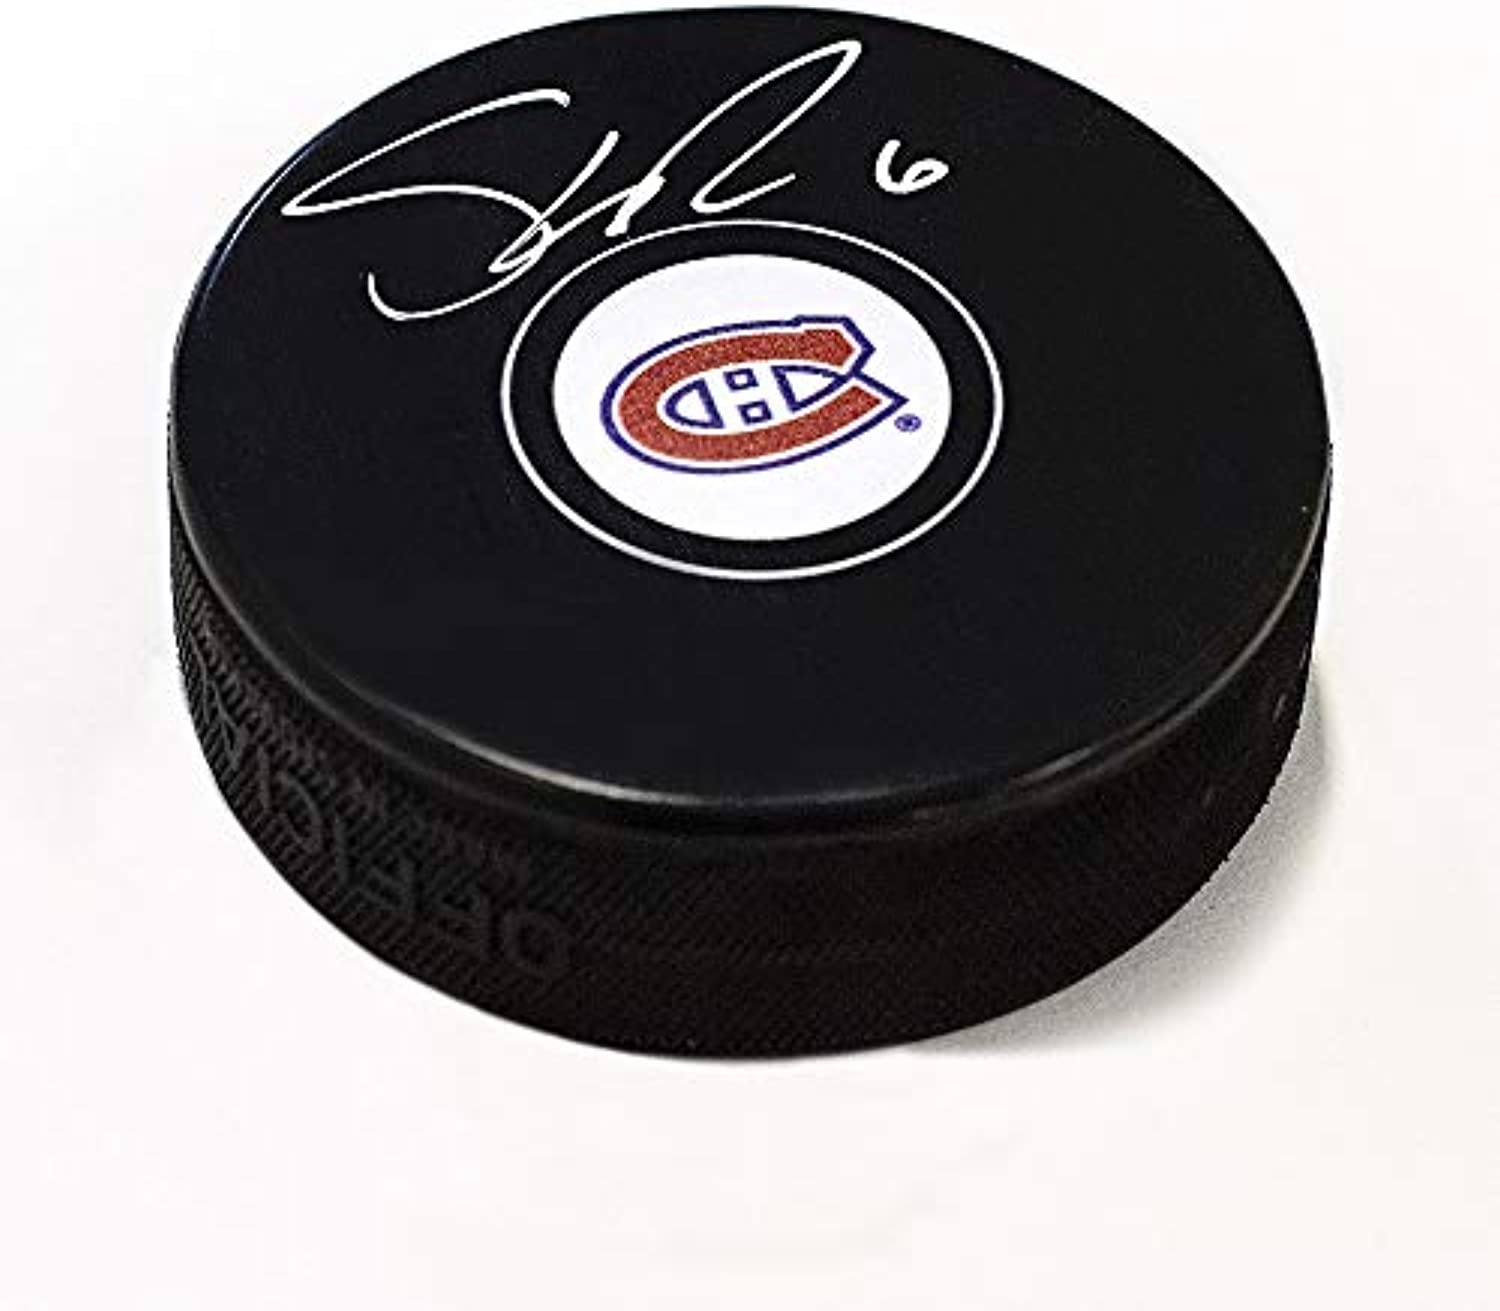 Shea Weber Montreal Canadiens Signed Autograph Model Hockey Puck